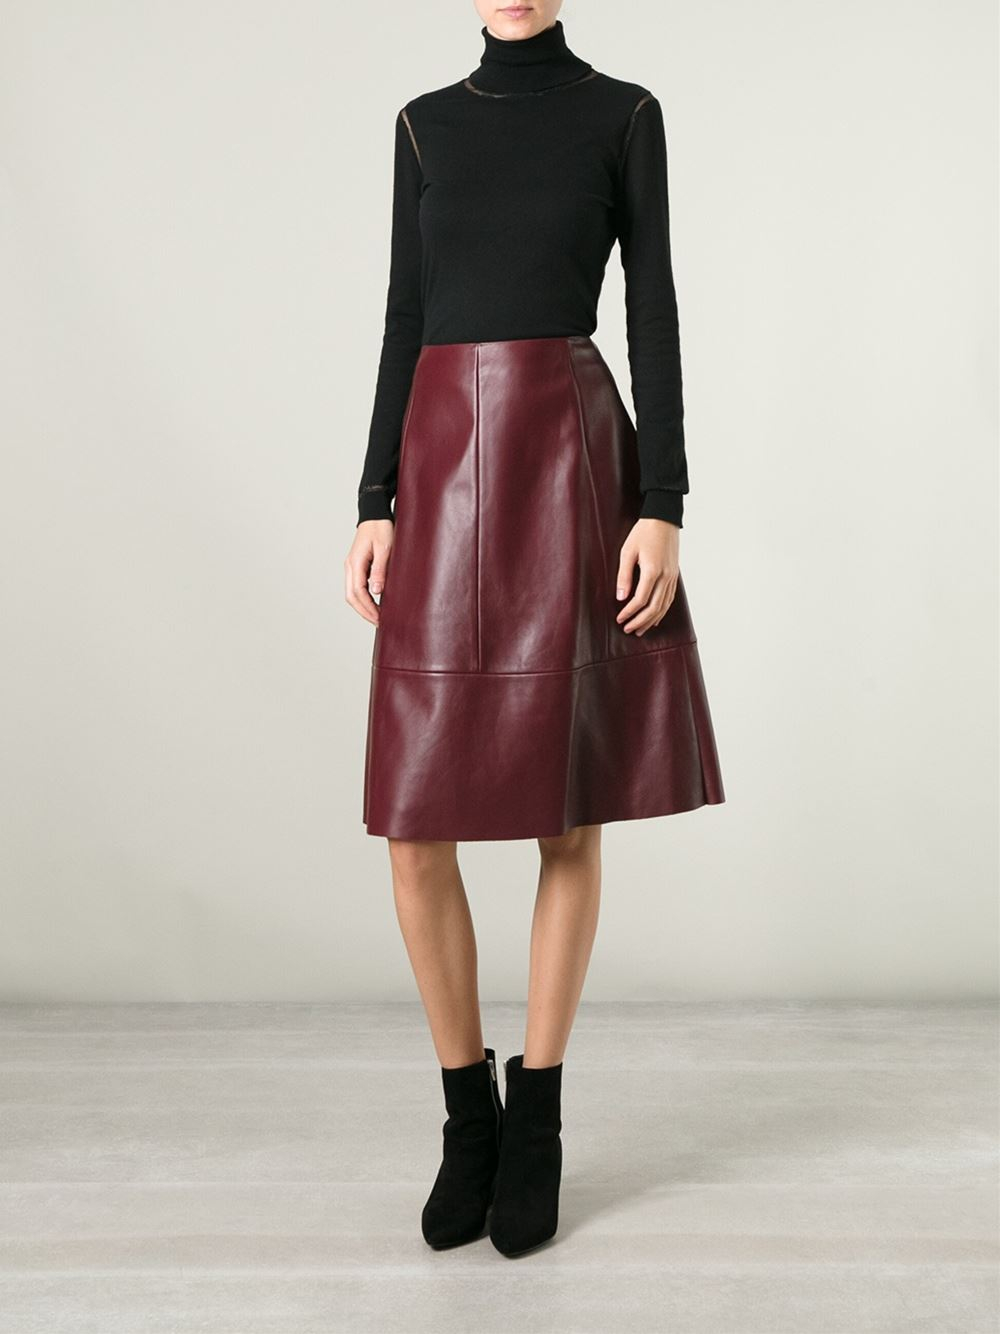 Drome Leather A-line Skirt in Red | Lyst